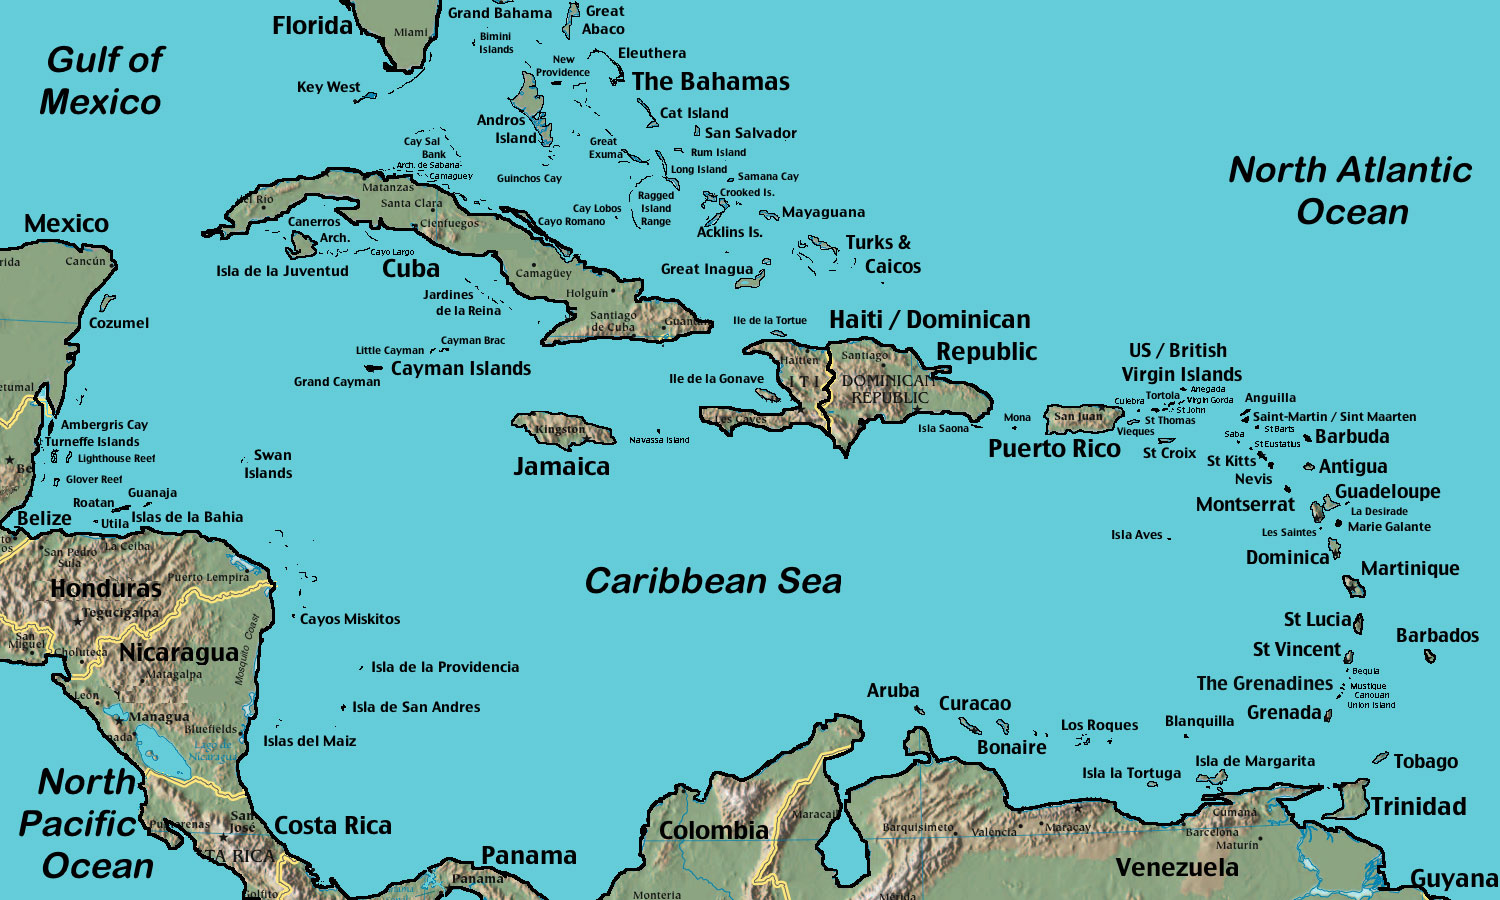 The Great Collection of Belize Maps